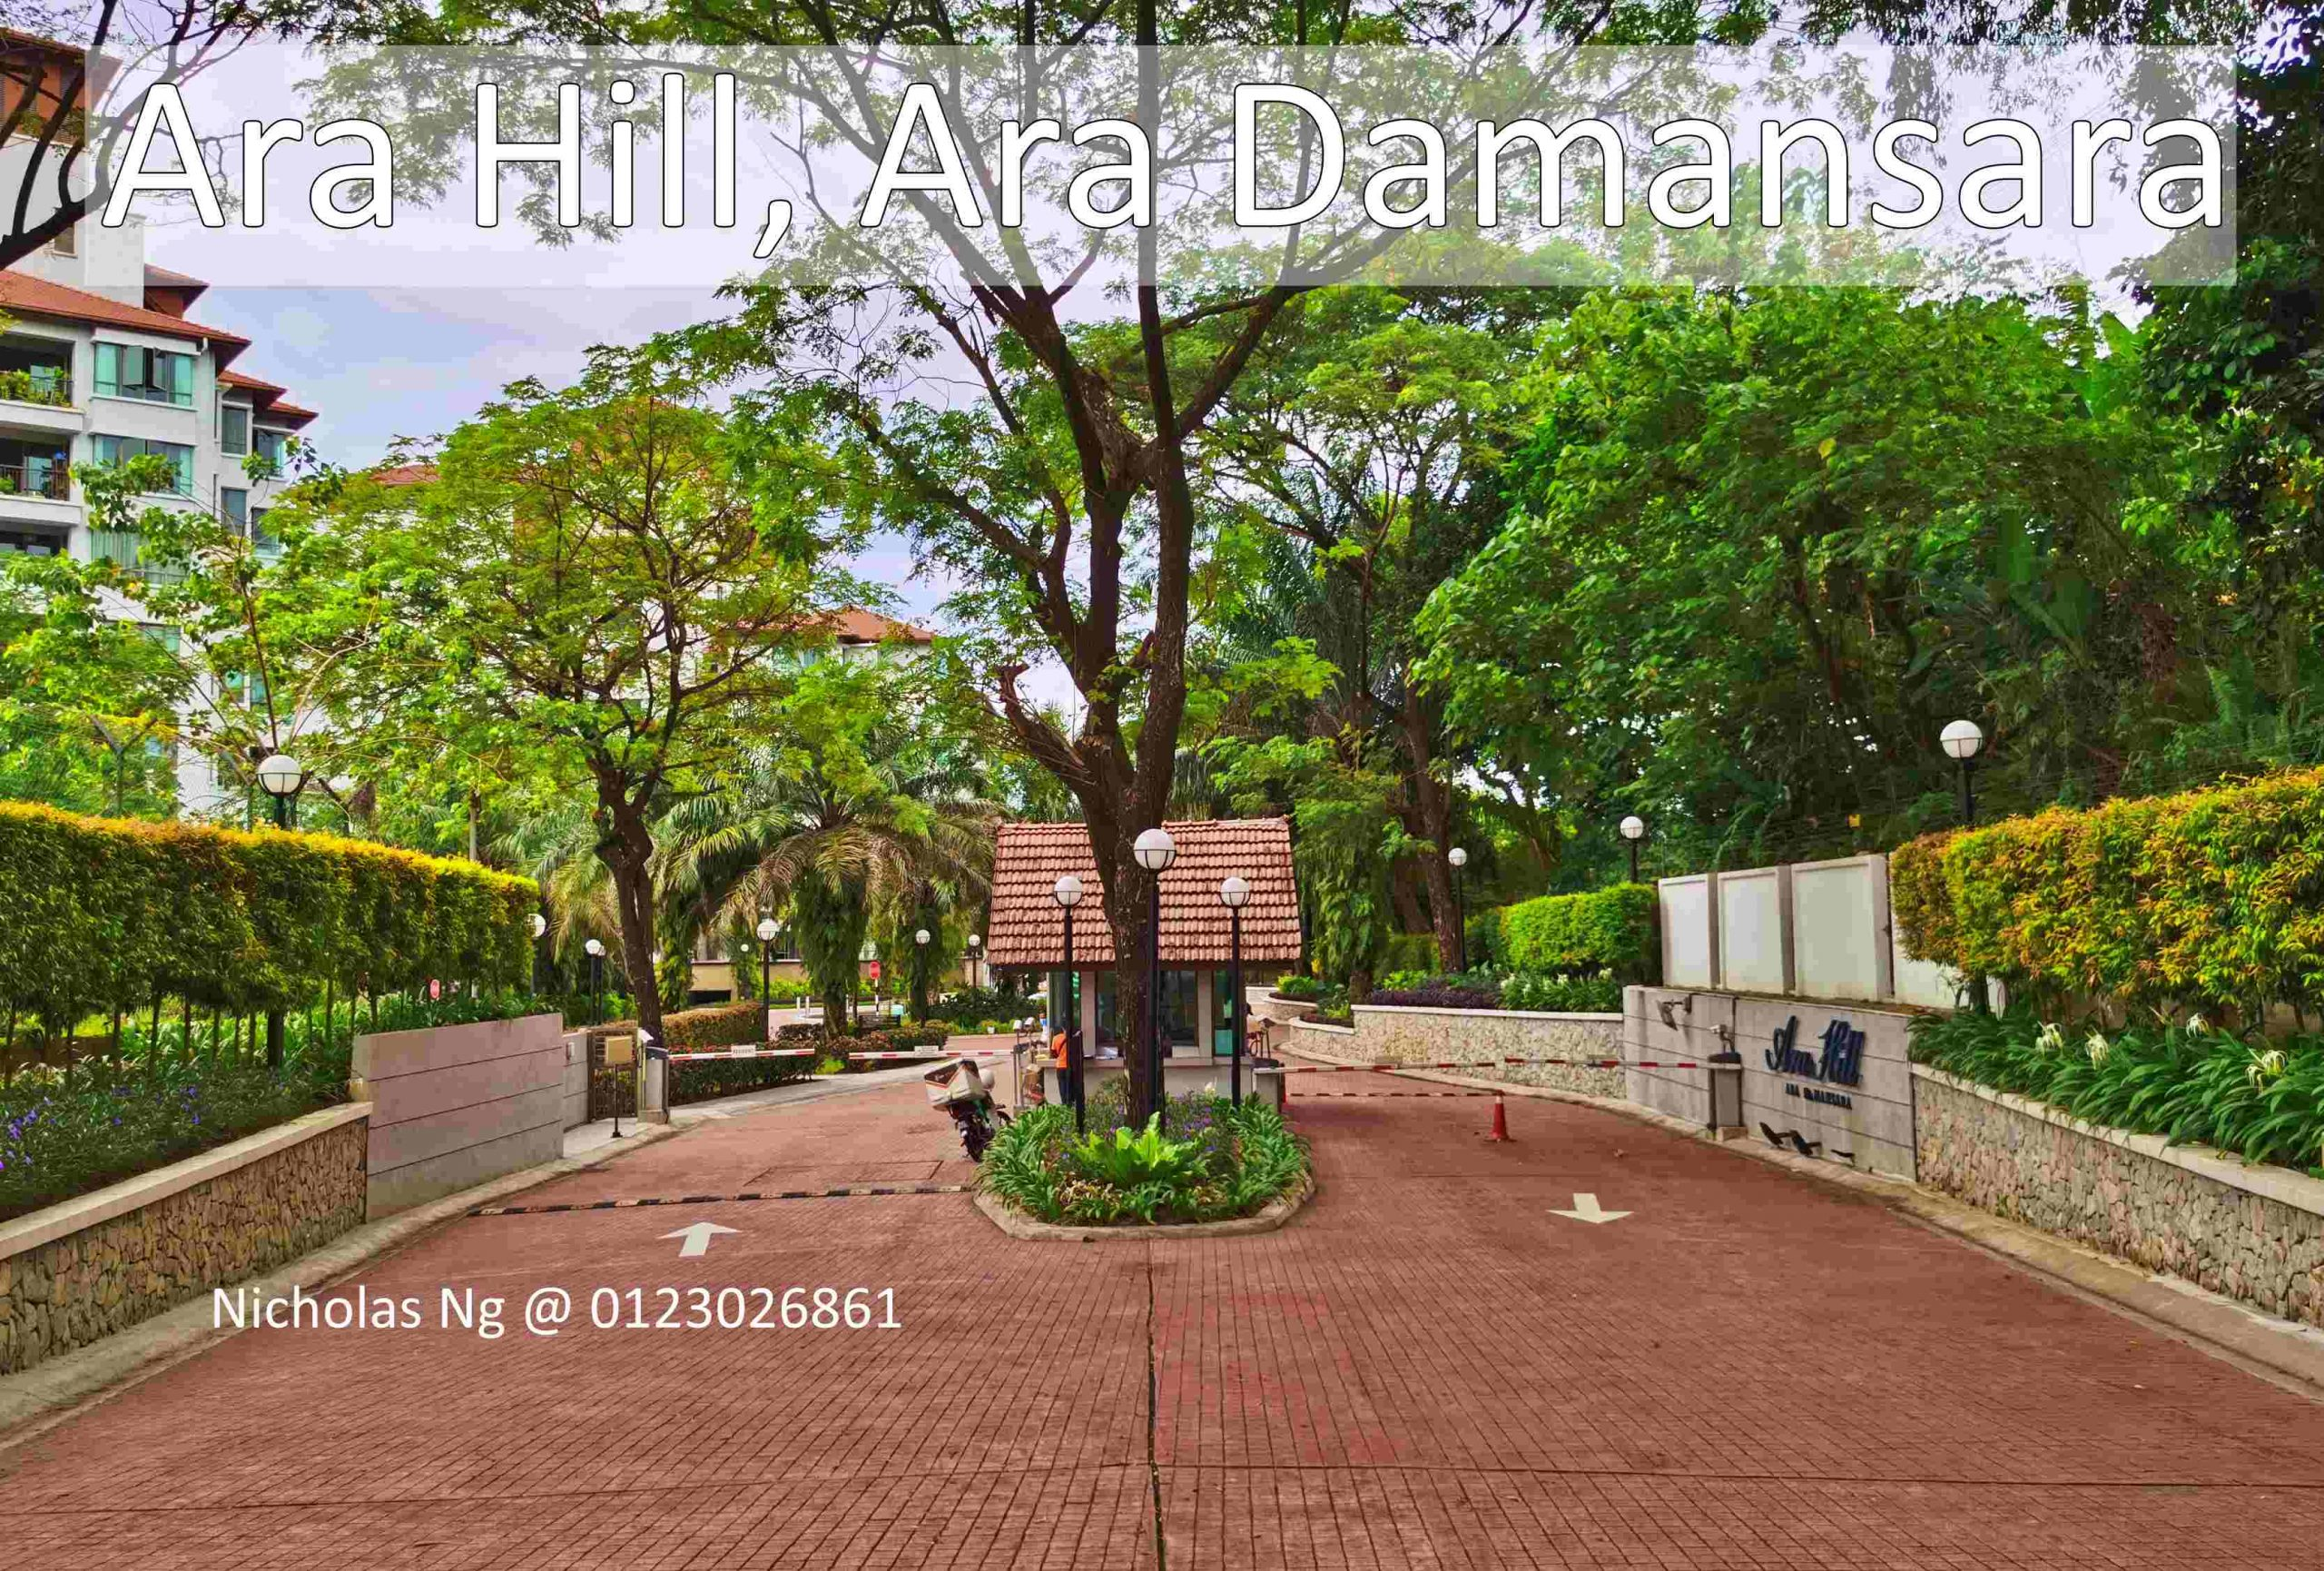 Ara Hill in Ara Damansara. A Resort Styled Condo for Tropical Lovers.